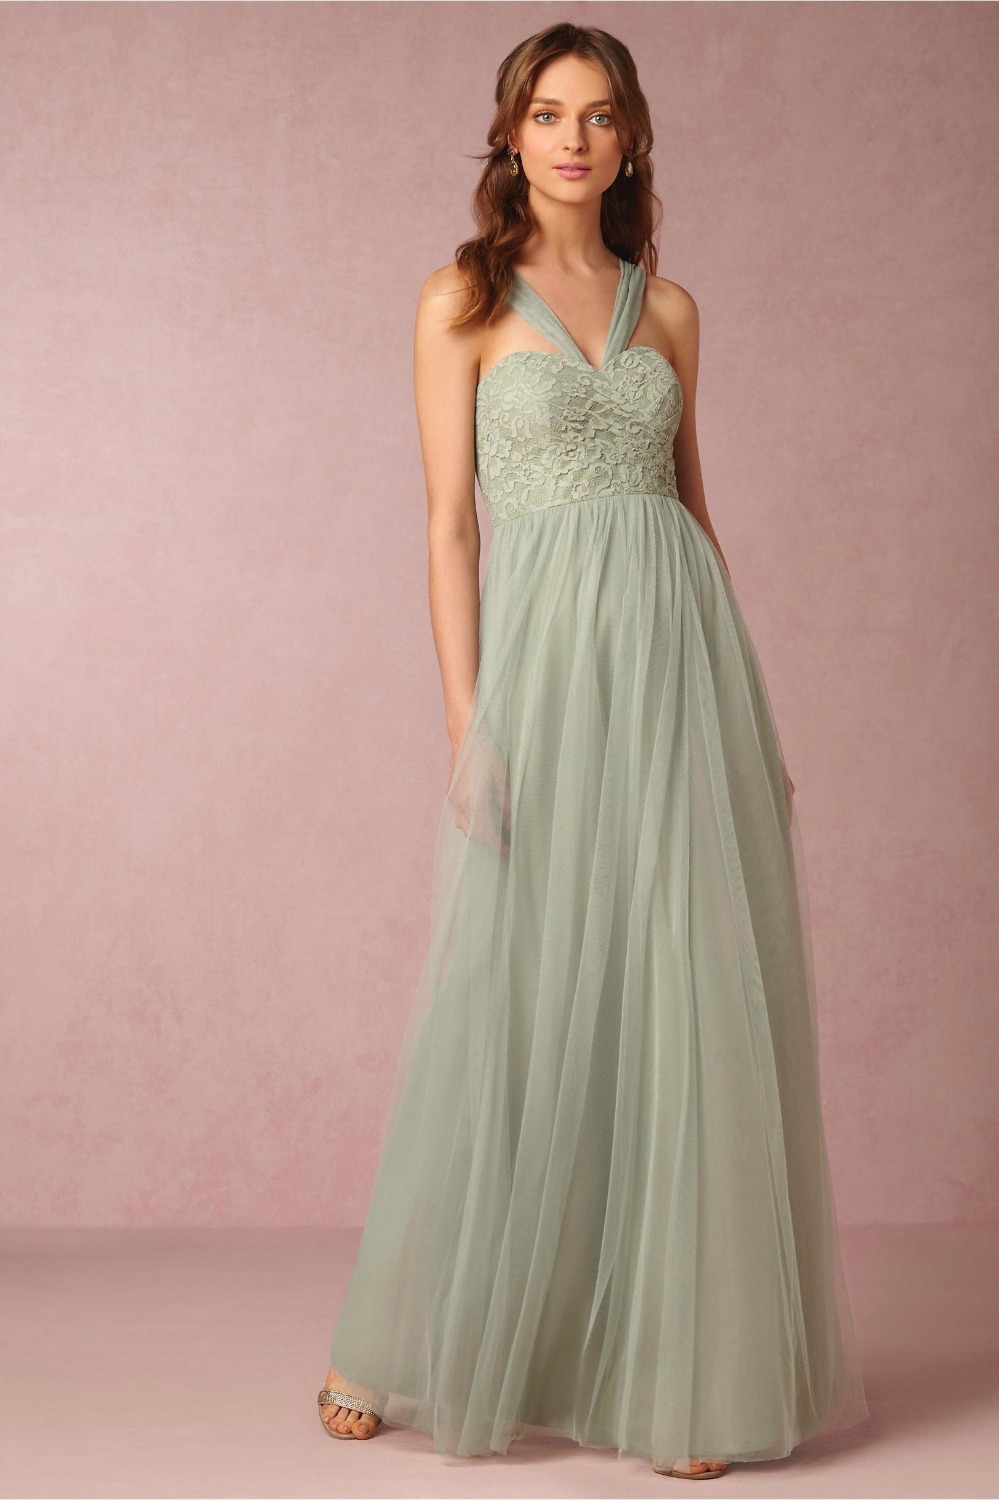 Selling bridesmaid dresses image collections braidsmaid dress selling bridesmaid dresses promotion shop for promotional selling vintage bridesmaid dresses lace and tulle long mint ombrellifo Image collections